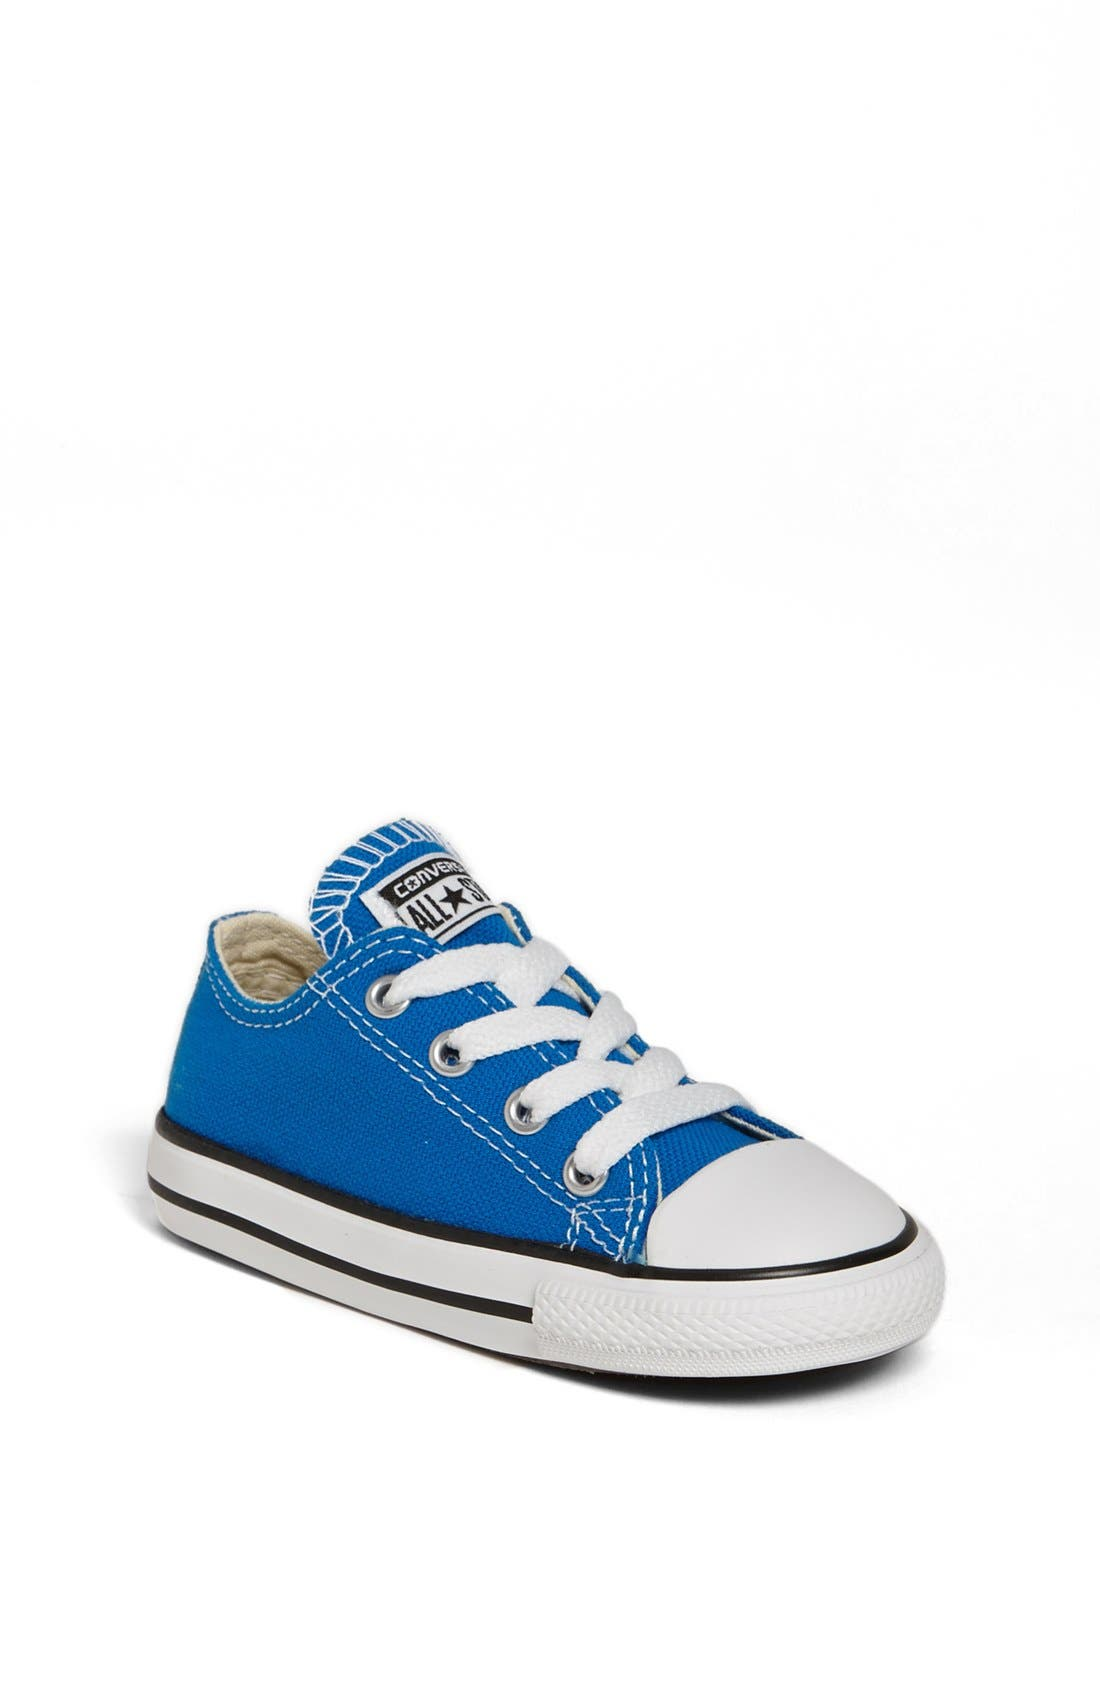 Main Image - Converse Chuck Taylor® All Star® Low Top Sneaker (Baby, Walker & Toddler)